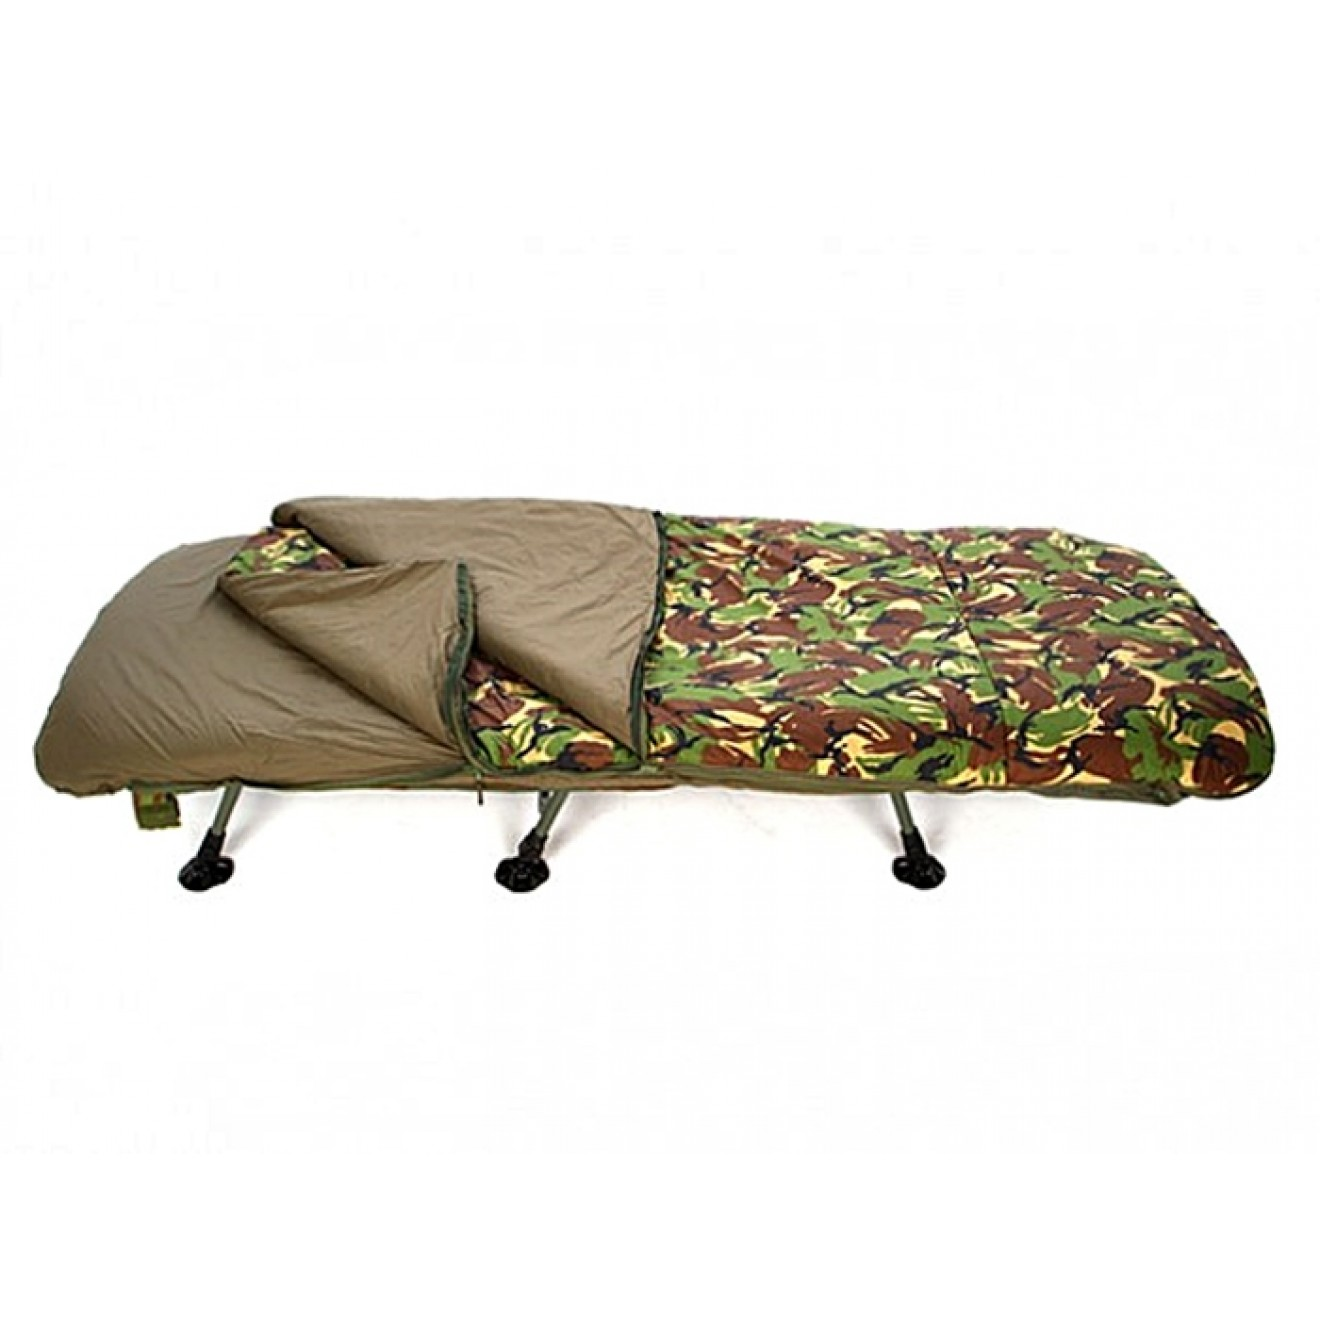 Fortis - Techlite Sleeping Bag DPM Camo